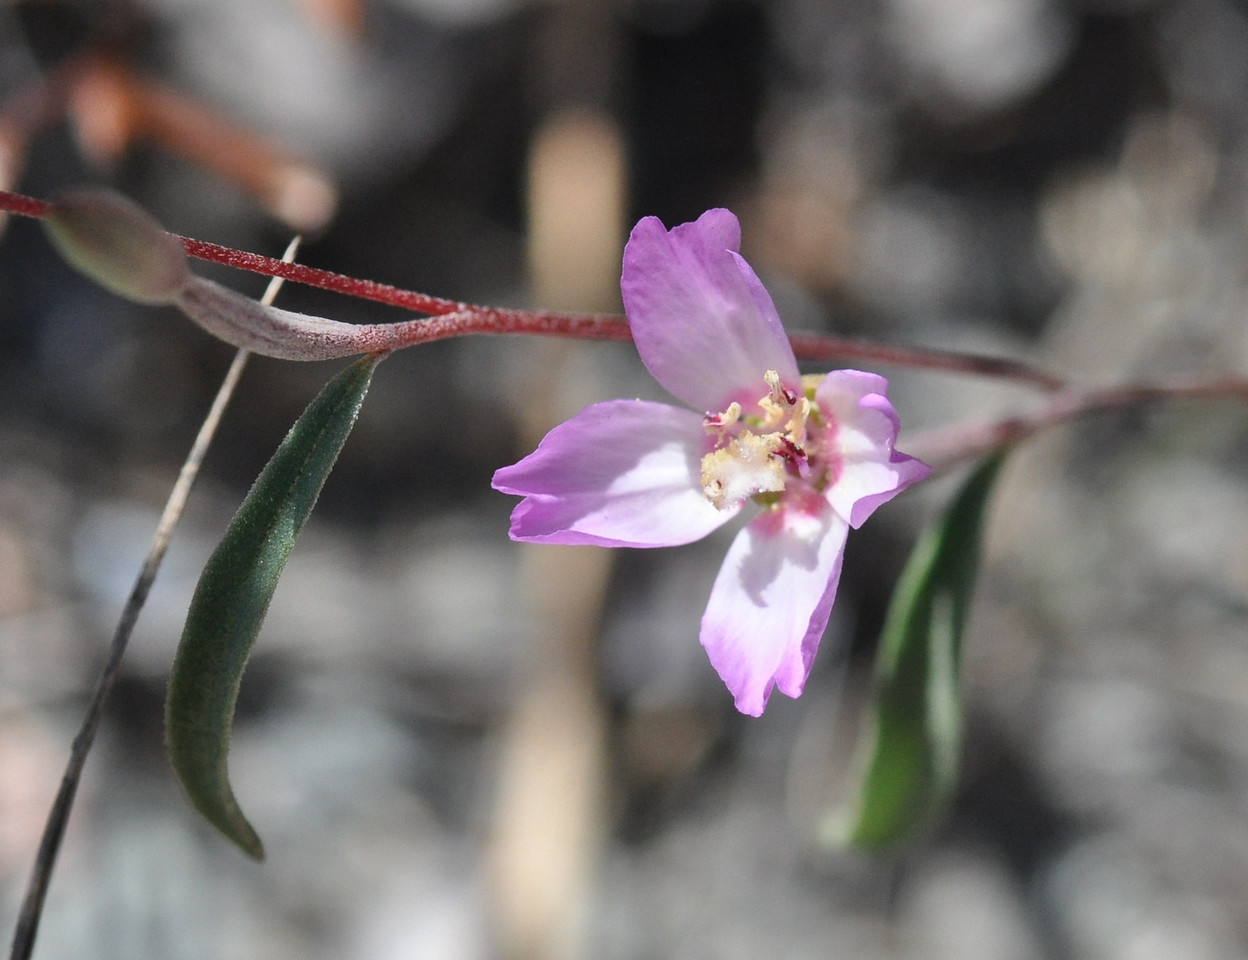 Another presidio clarkia blossom. Click on this image to see the flower parts.